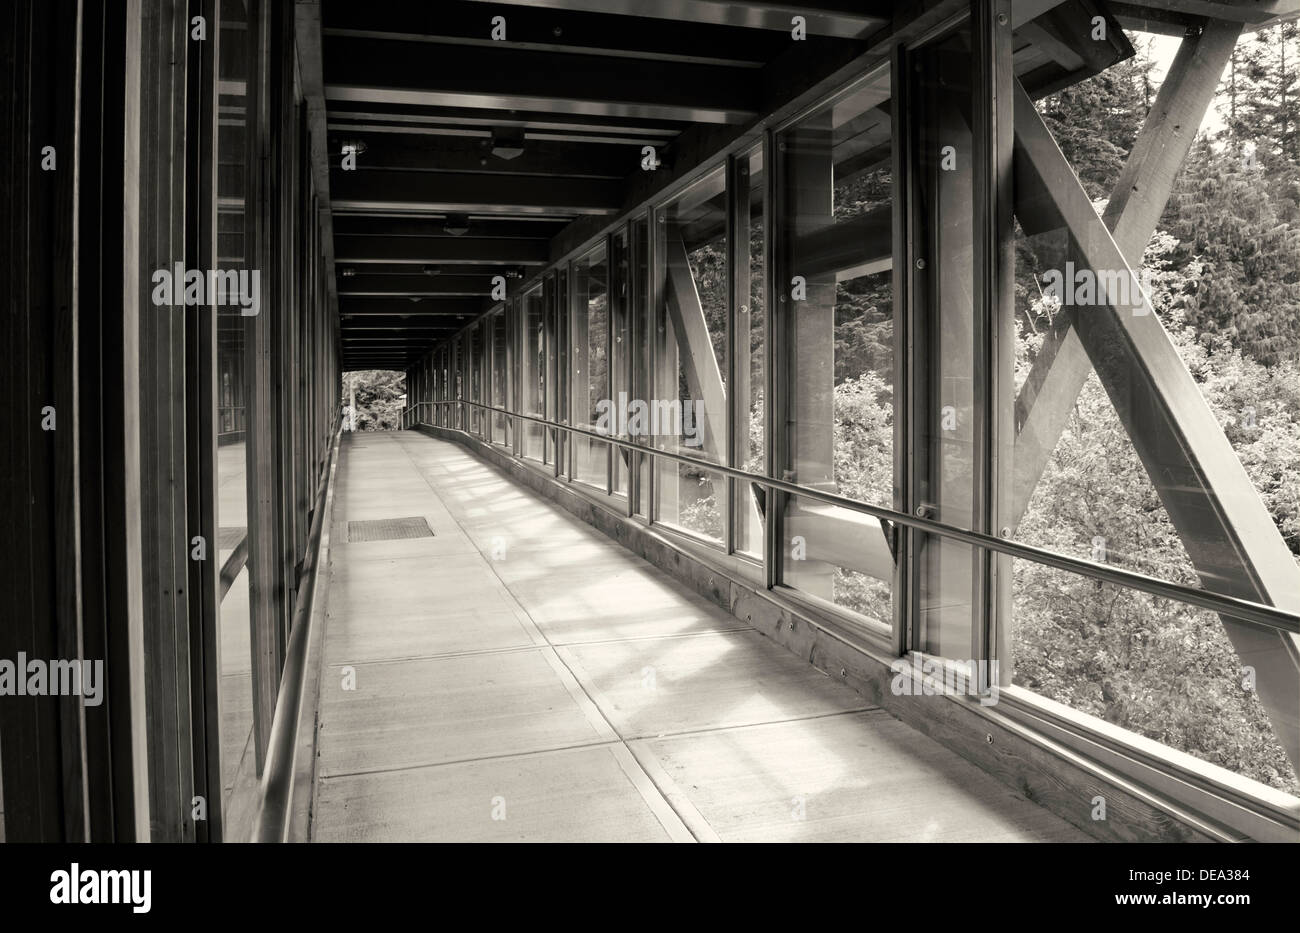 Long perspective of covered wood pedestrian bridge or walkway in black and white.  narrowing into the distance. Stock Photo